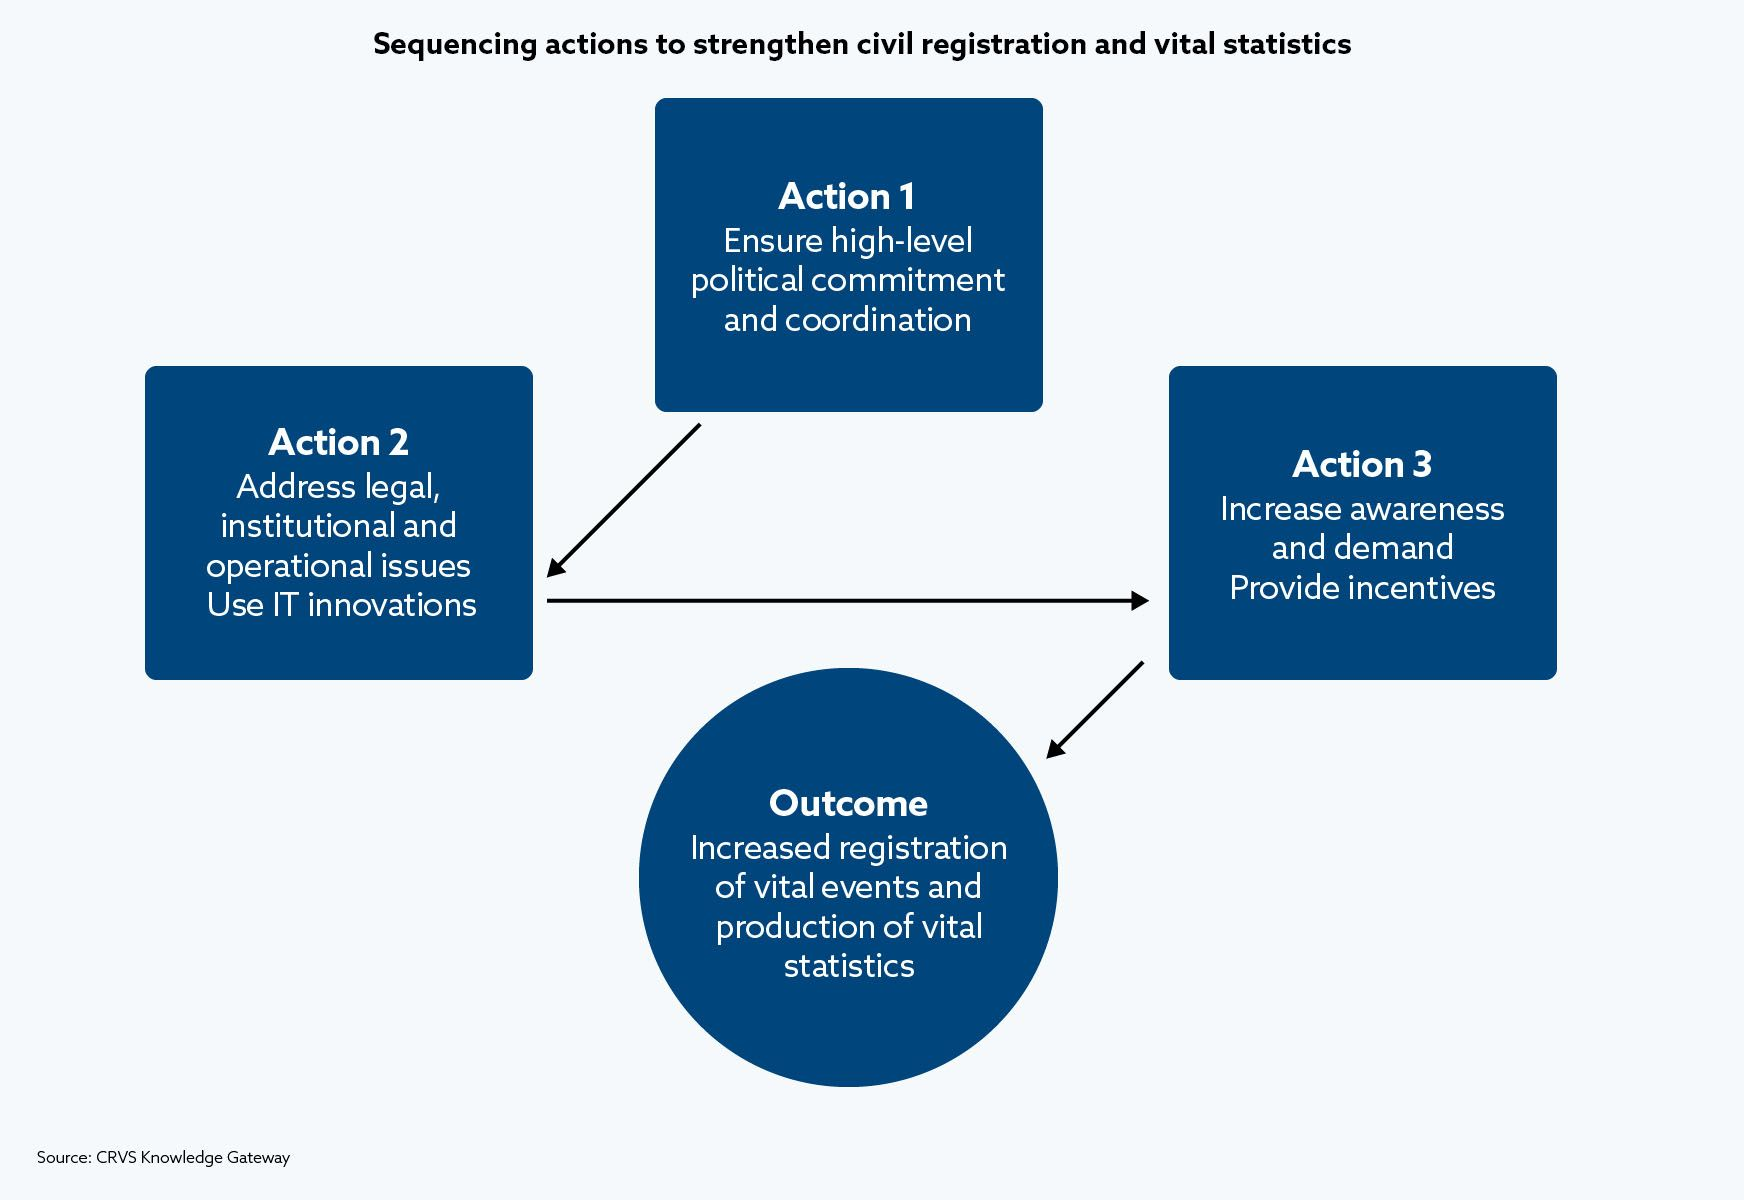 Sequencing actions to strengthen civil registration and vital statistics